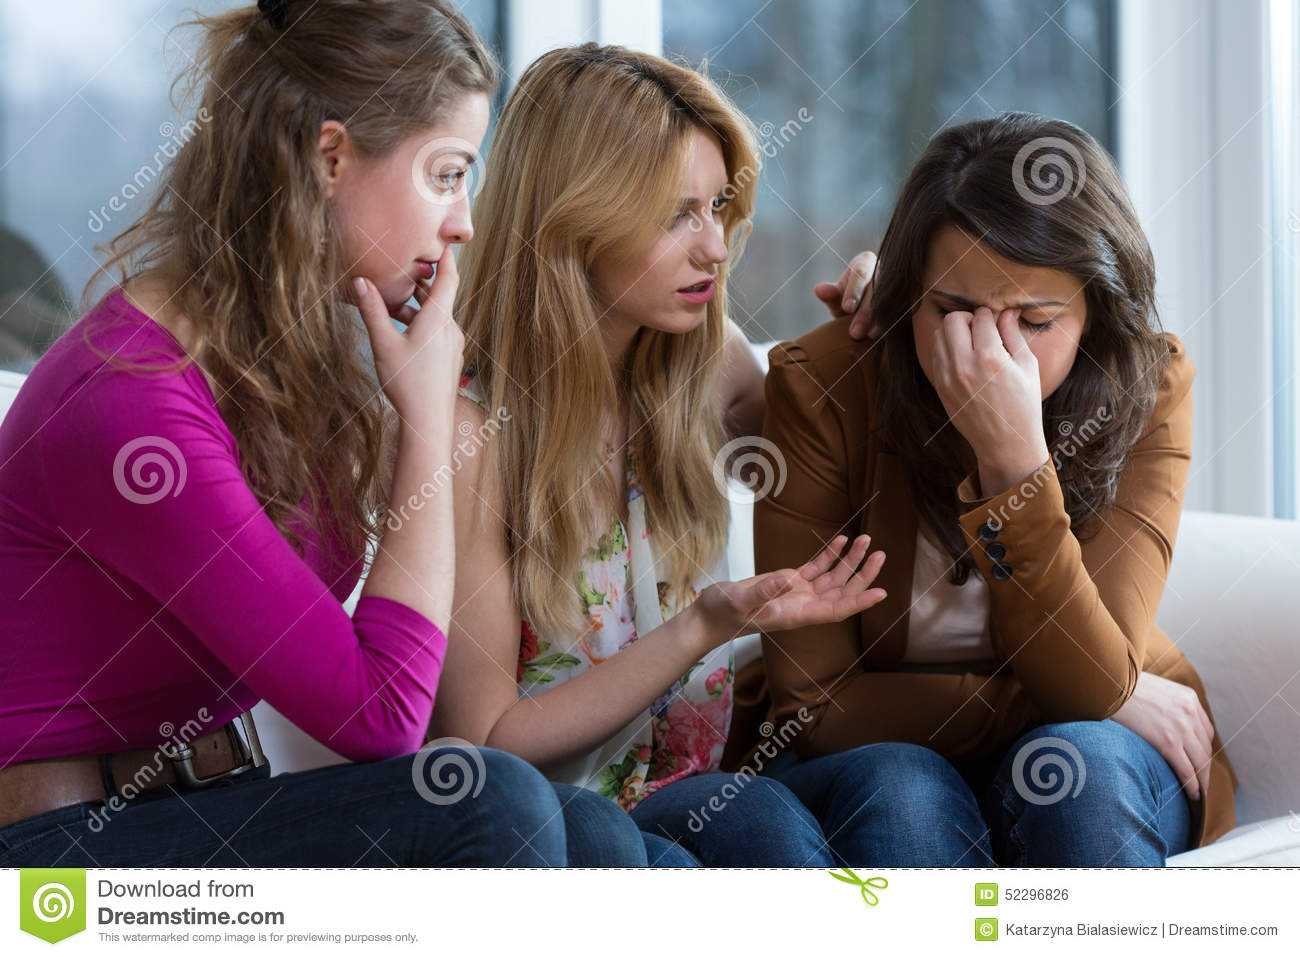 global teen worries Top 10 problems and issues teenagers face updated on april 29, 2016 sofs teen health is at high risk and its no wonder that this generation now is the victim.